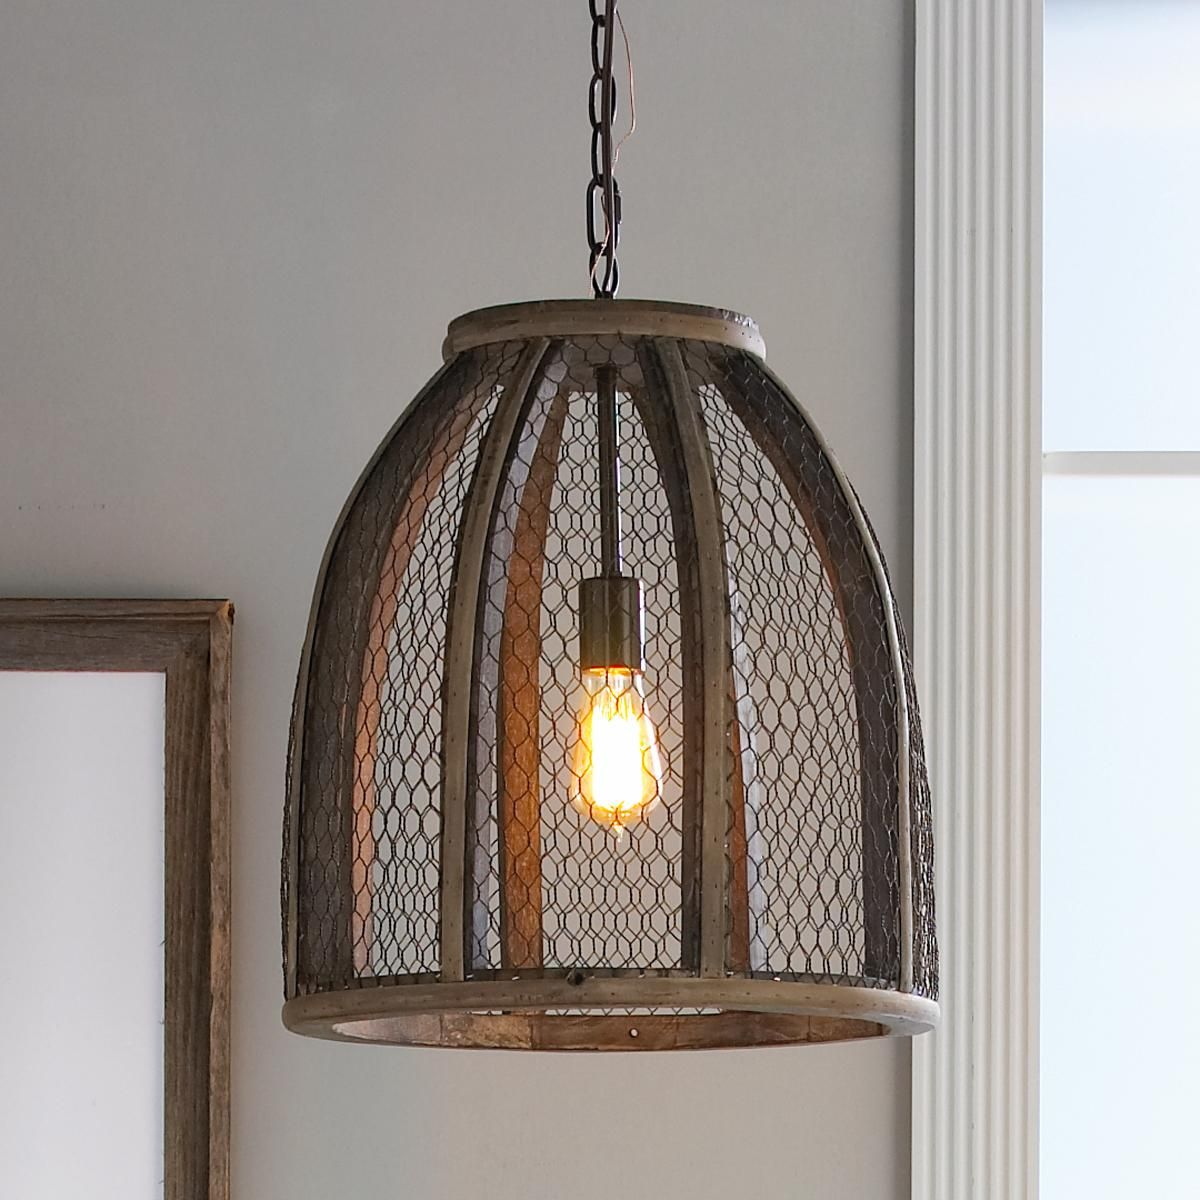 Chicken wire pendant light large chicken wire pendant chicken wire pendant light large aloadofball